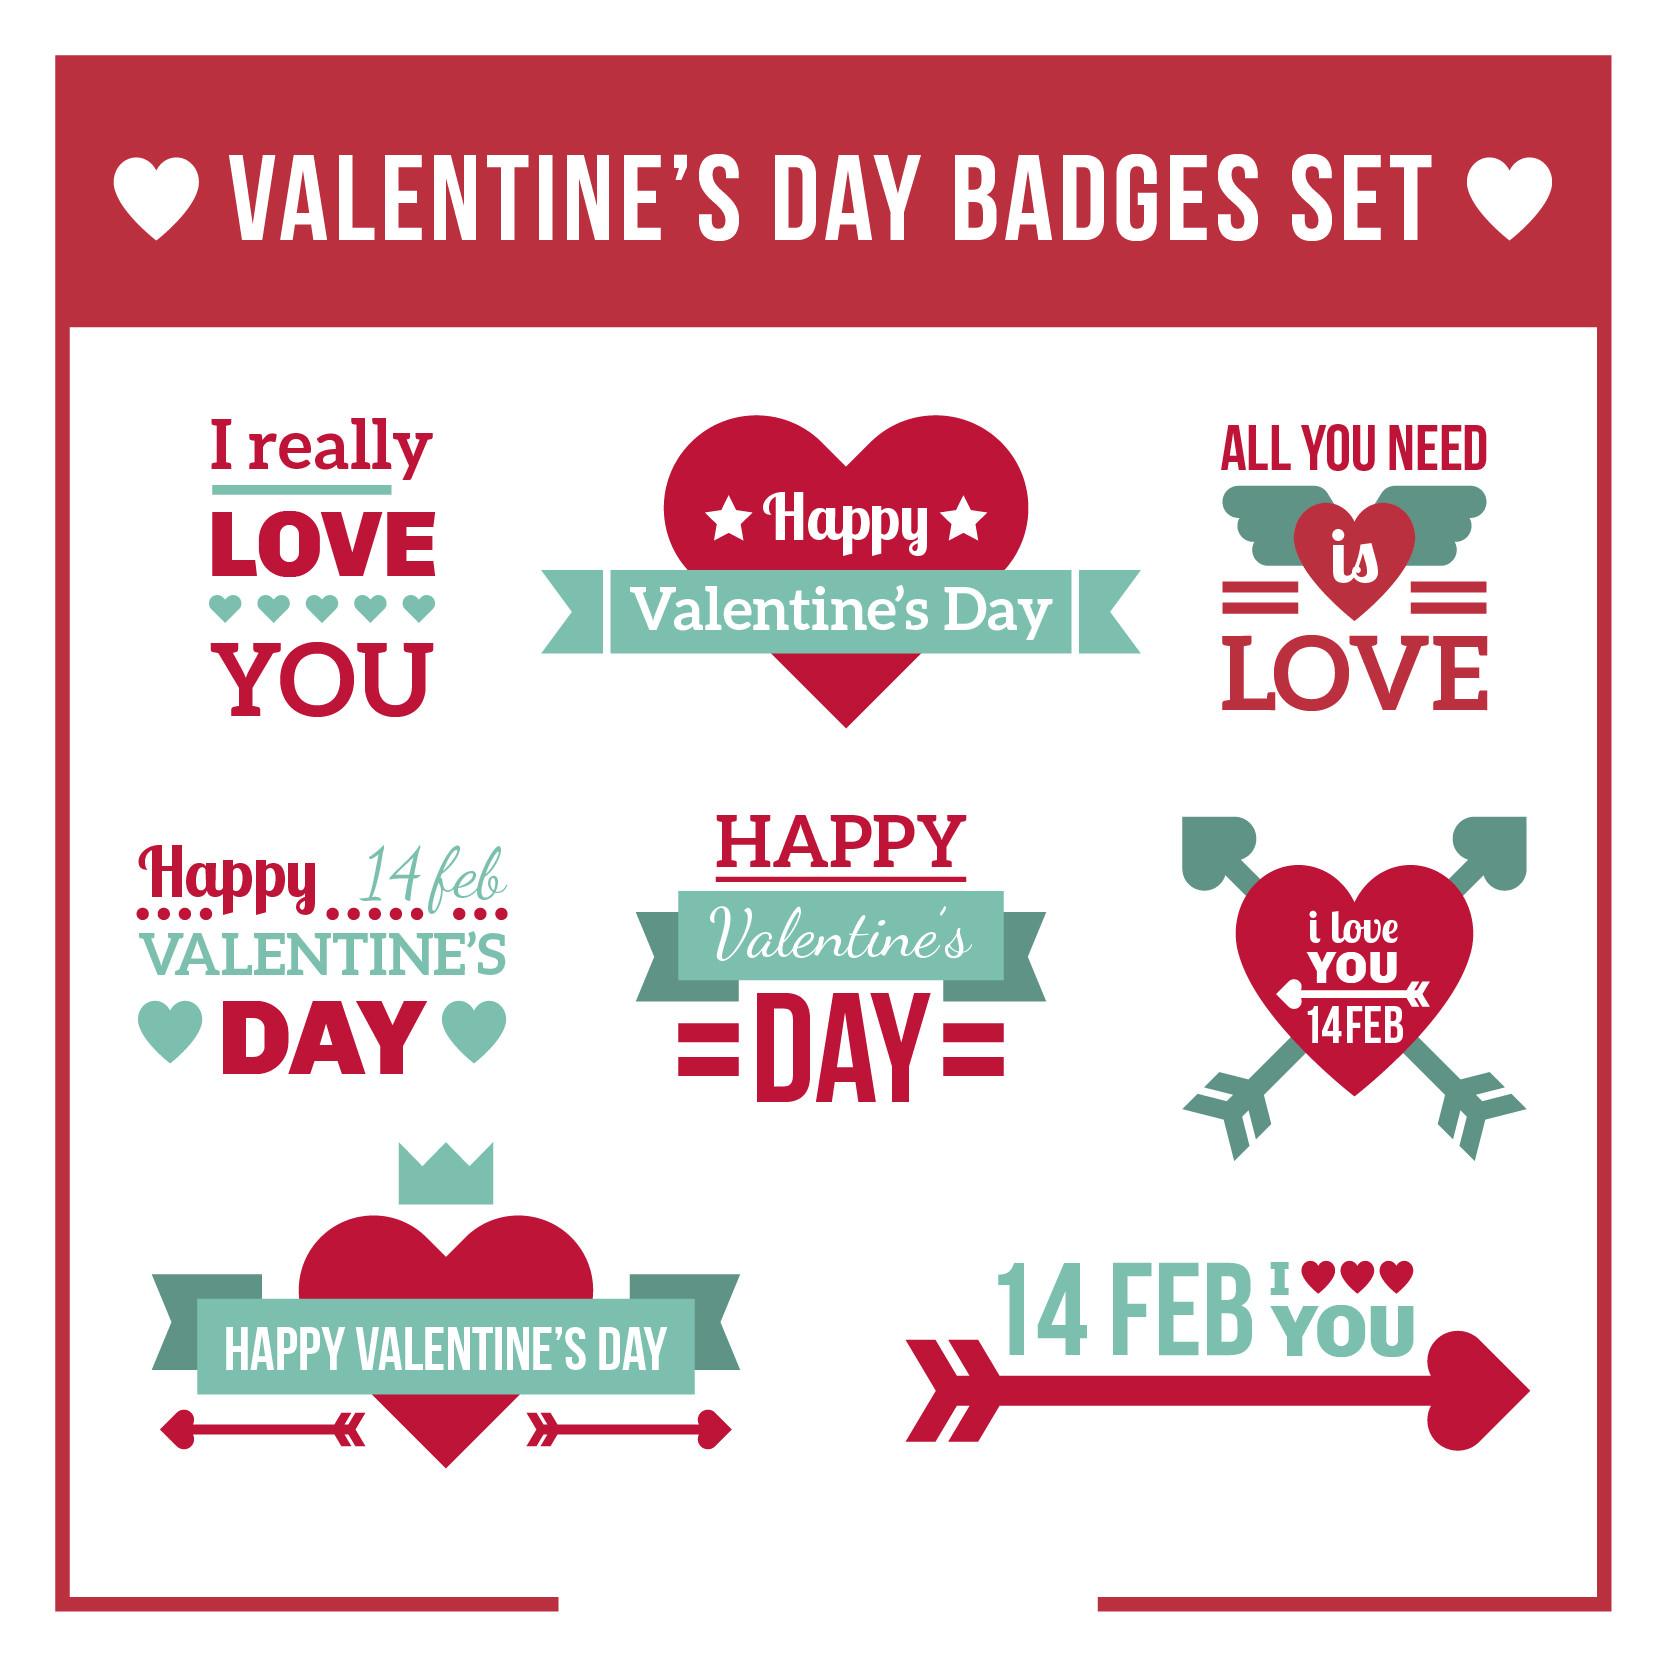 Valentine's Day Badges Set in Flat Design